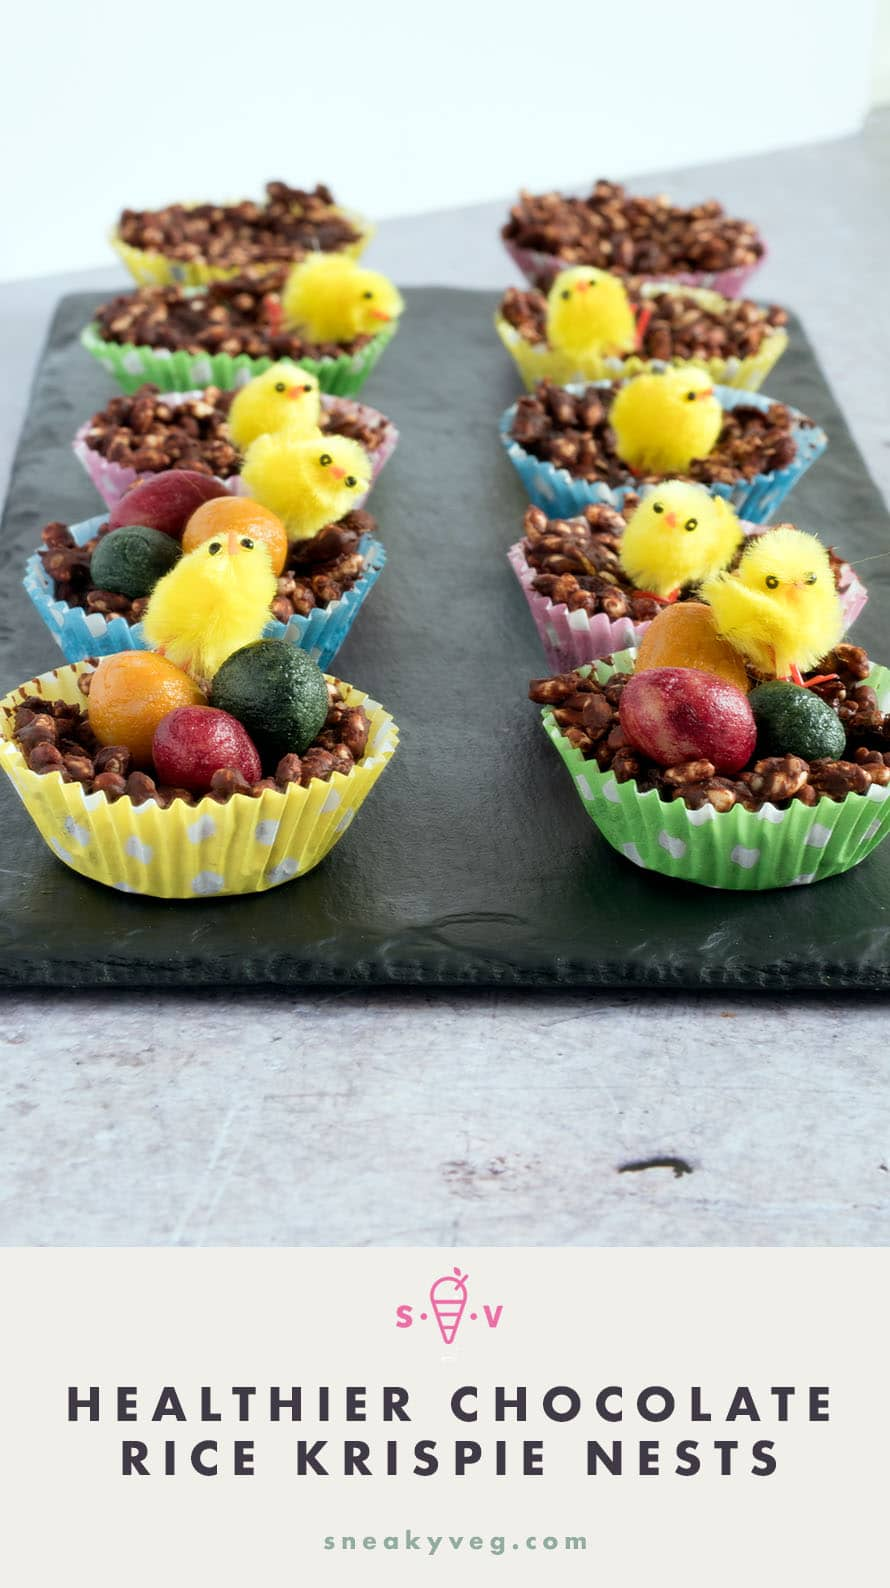 healthier chocolate rice krispie nests